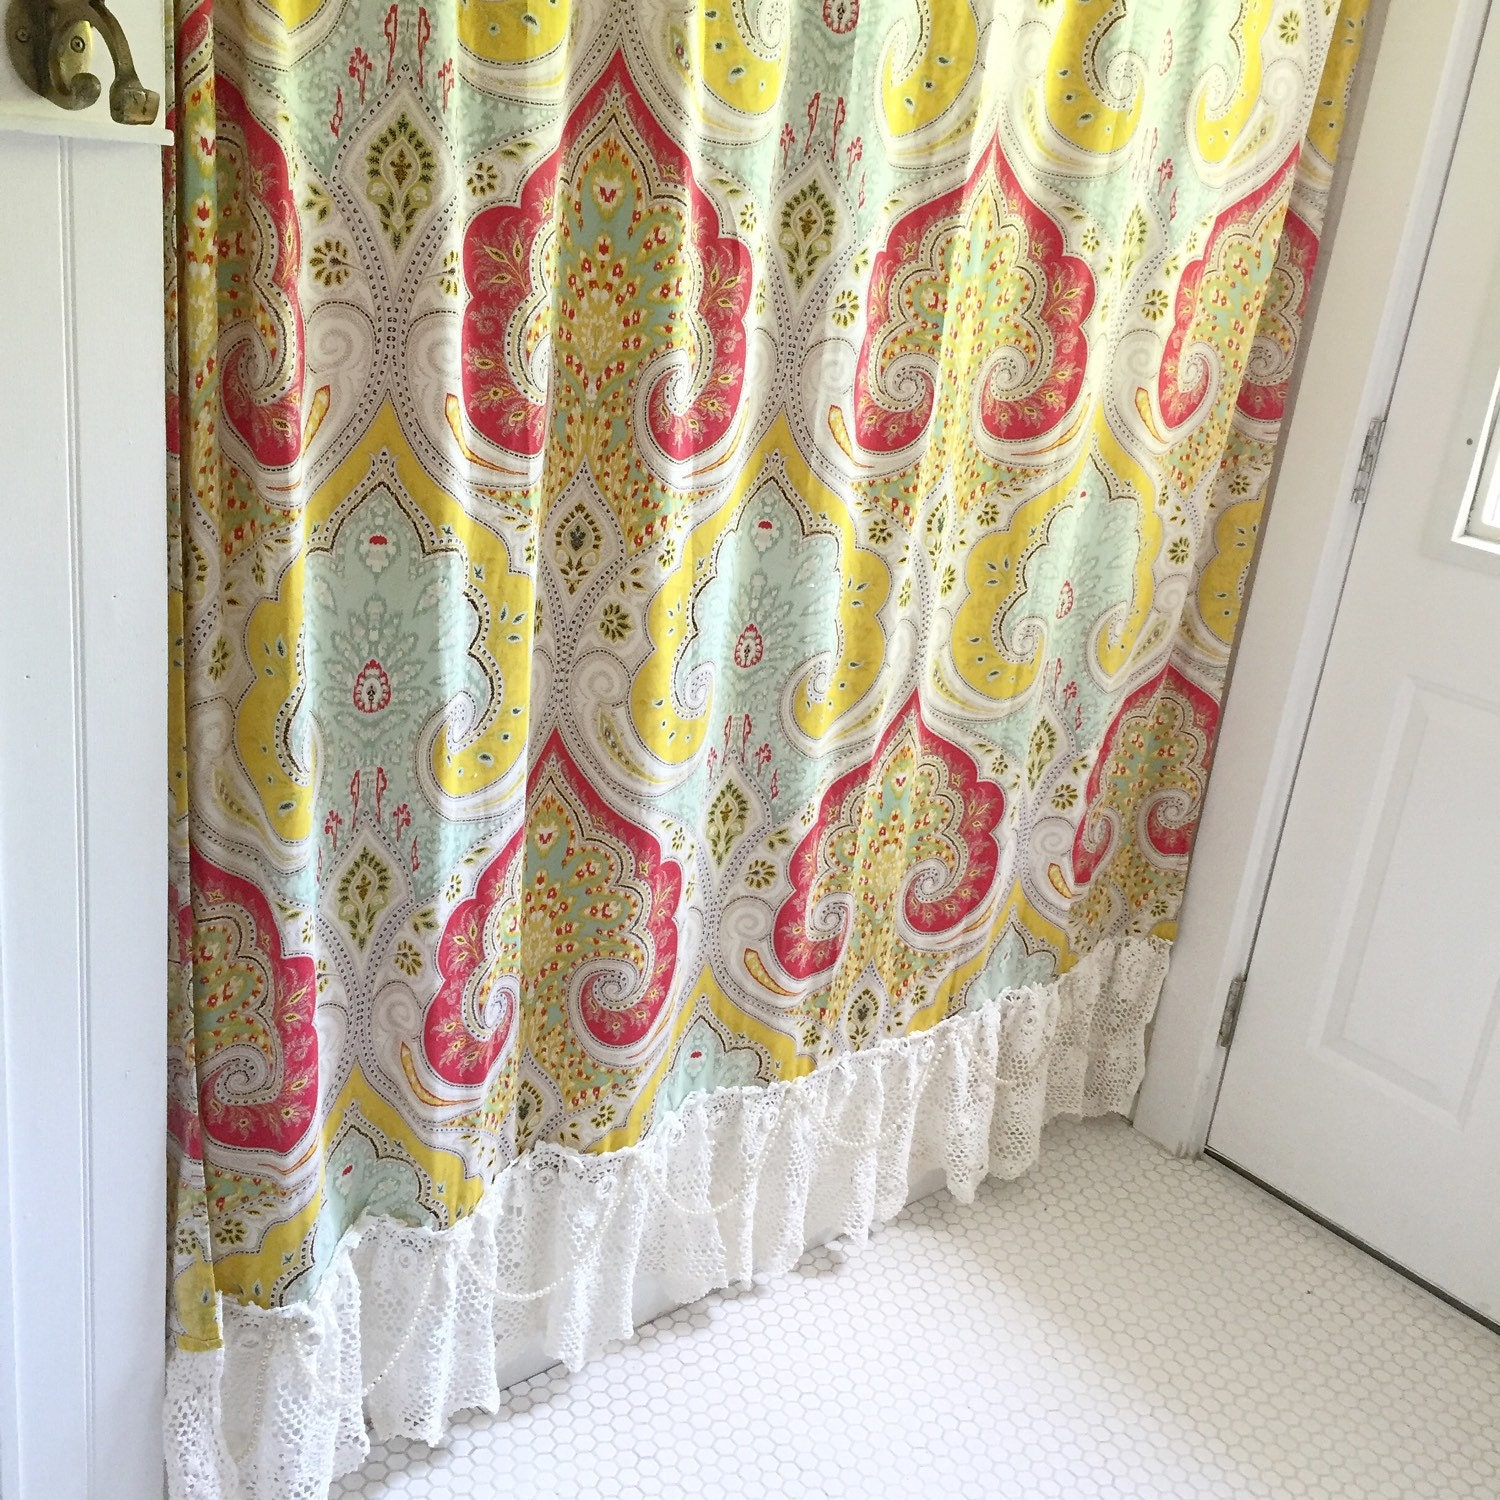 French Country Shower Curtain Bohemian Ruffle Shabby Chic Lace